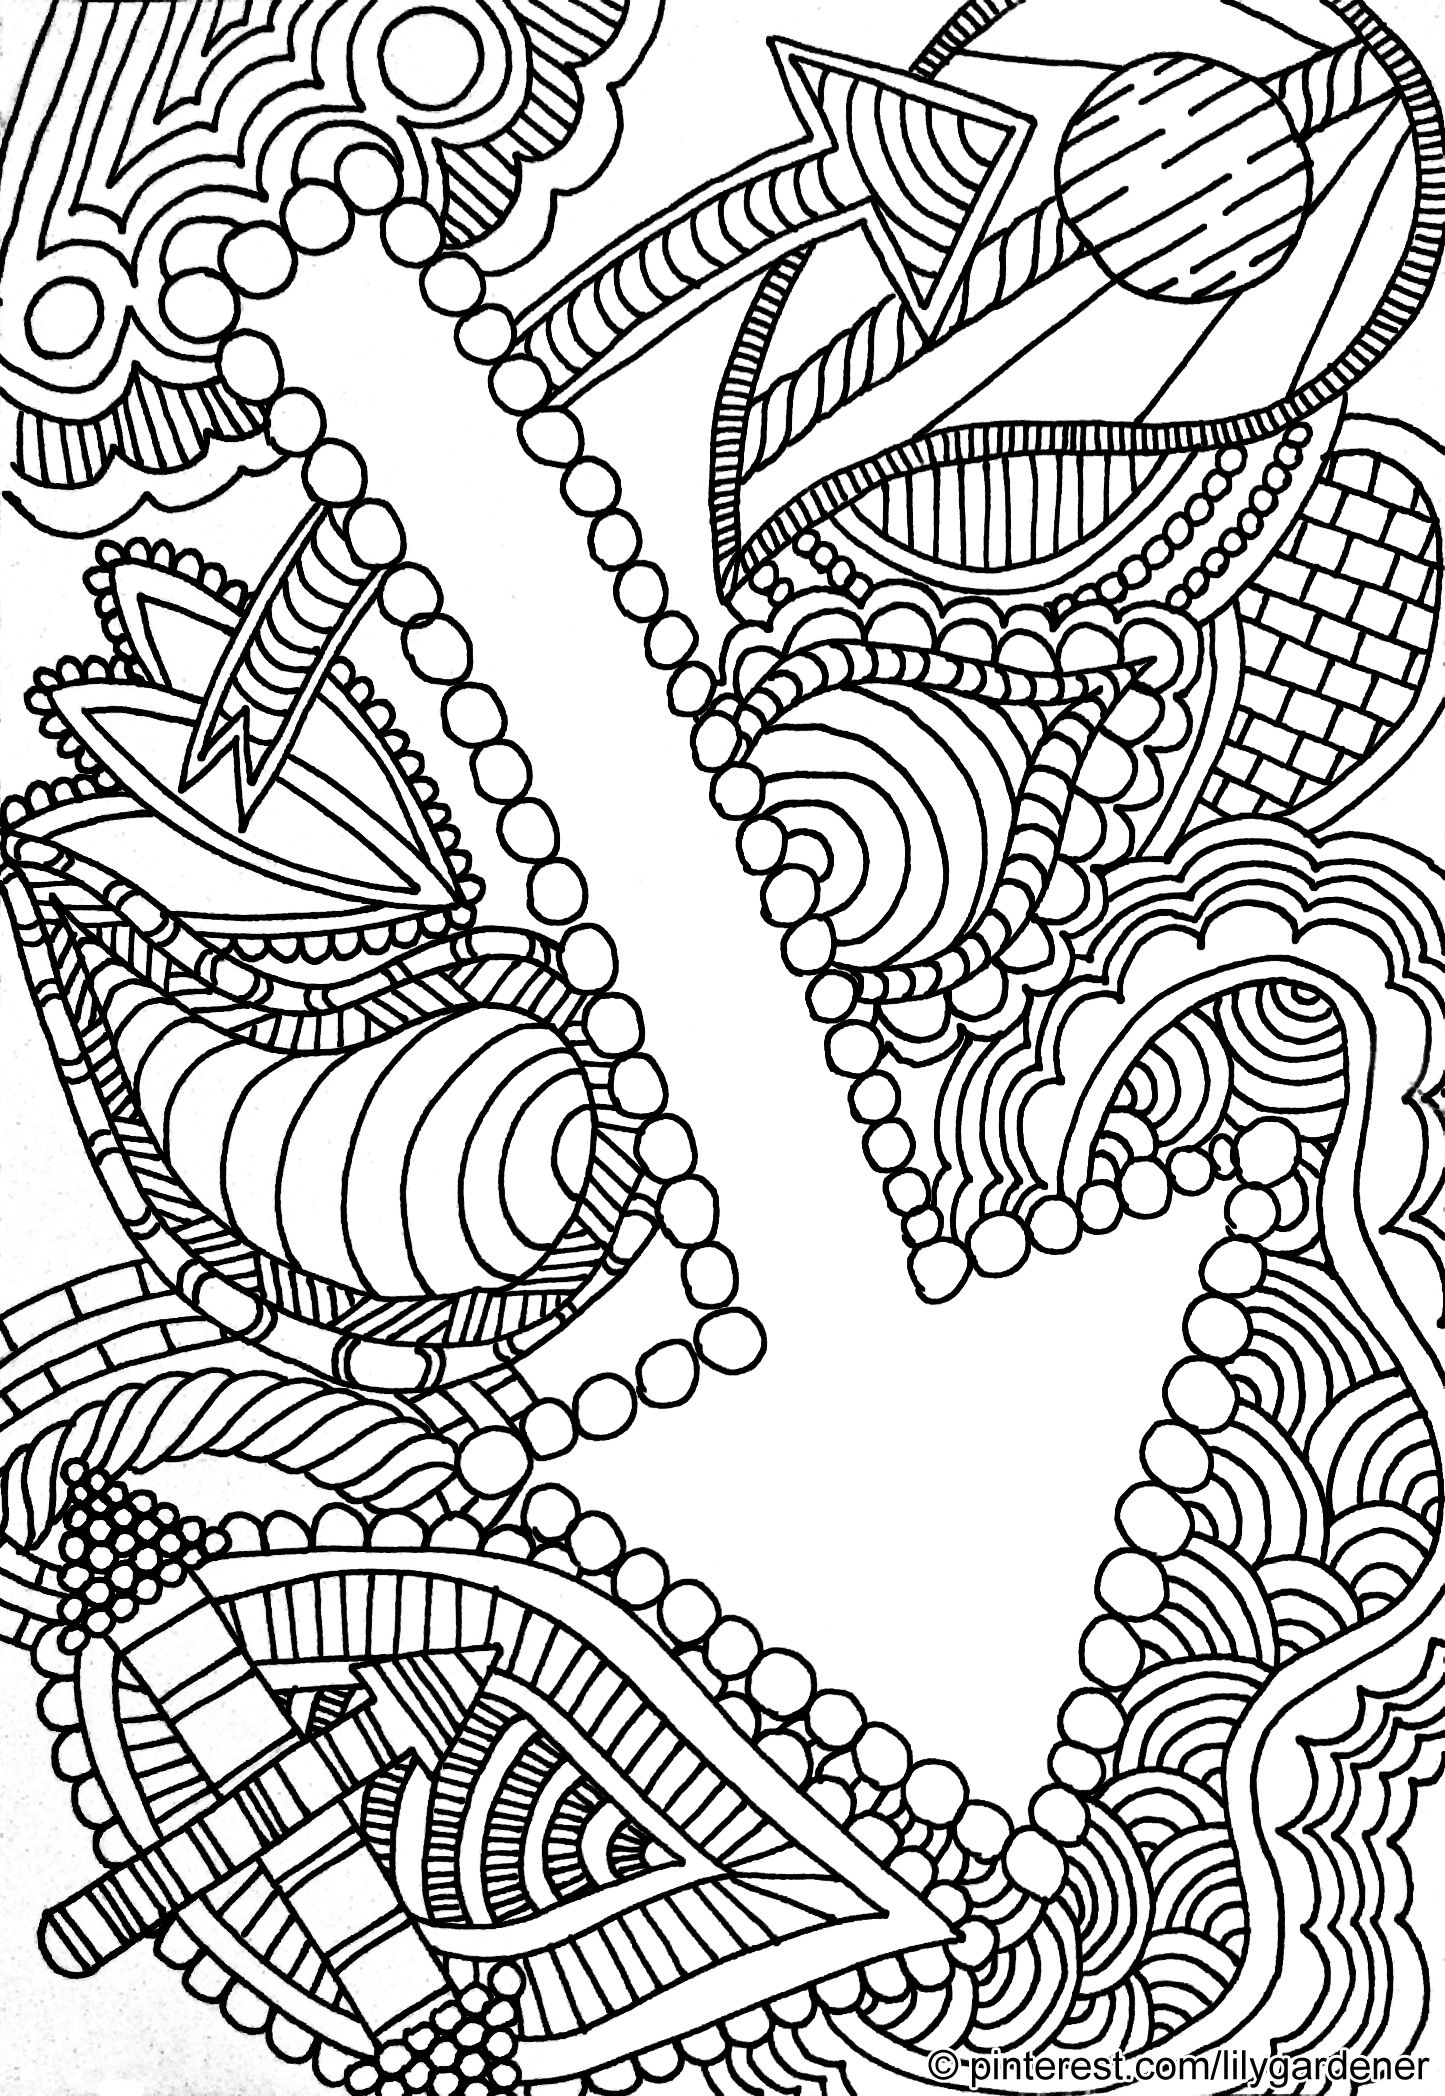 coloring prints for adults printable abstract pattern adult coloring pages 01 for prints coloring adults